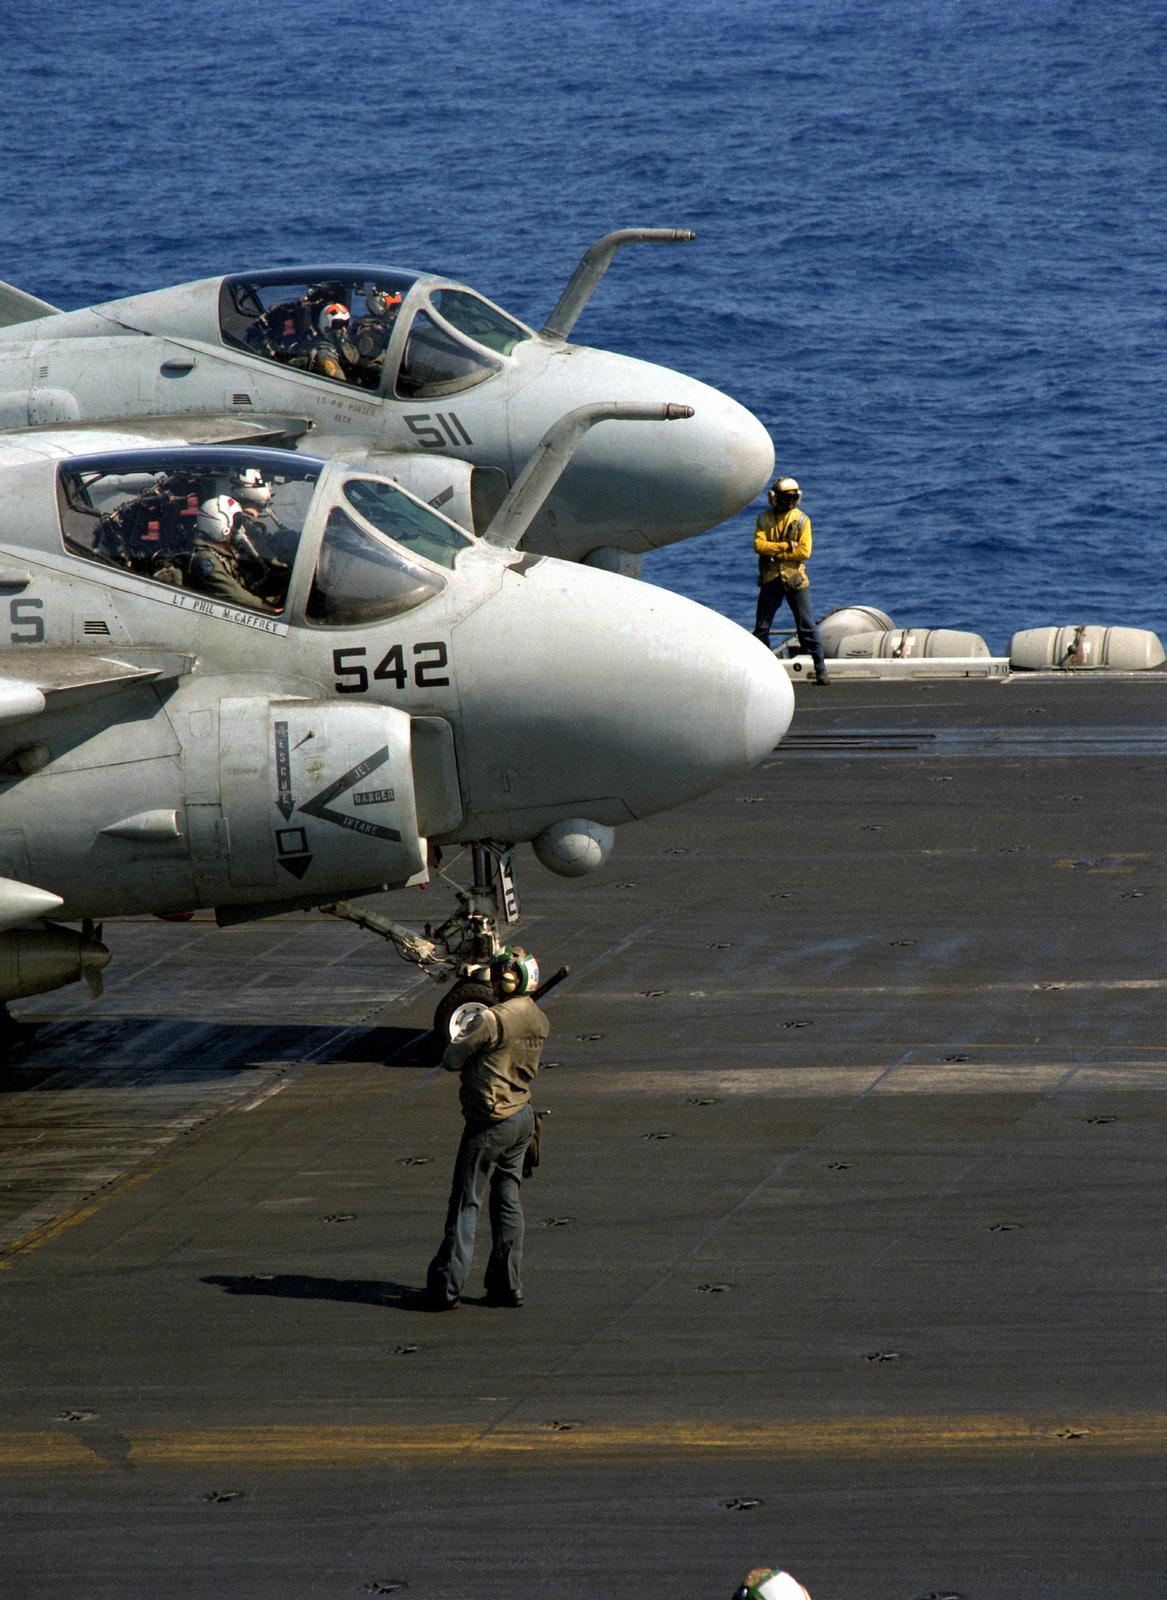 A-6E Intruder aircraft from Attack Squadron 36 (VA-36), foreground, and Attack Squadron 65 (VA-65) wait to taxi into position for launch on the flight deck of the nuclear-powered aircraft carrier USS THEODORE ROOSEVELT (CV-71). The ROOSEVELT is on station in the eastern Mediterranean to support Operation Provide Comfort, a multinational effort to aid Kurdish refugees in southern Turkey and northern Iraq.